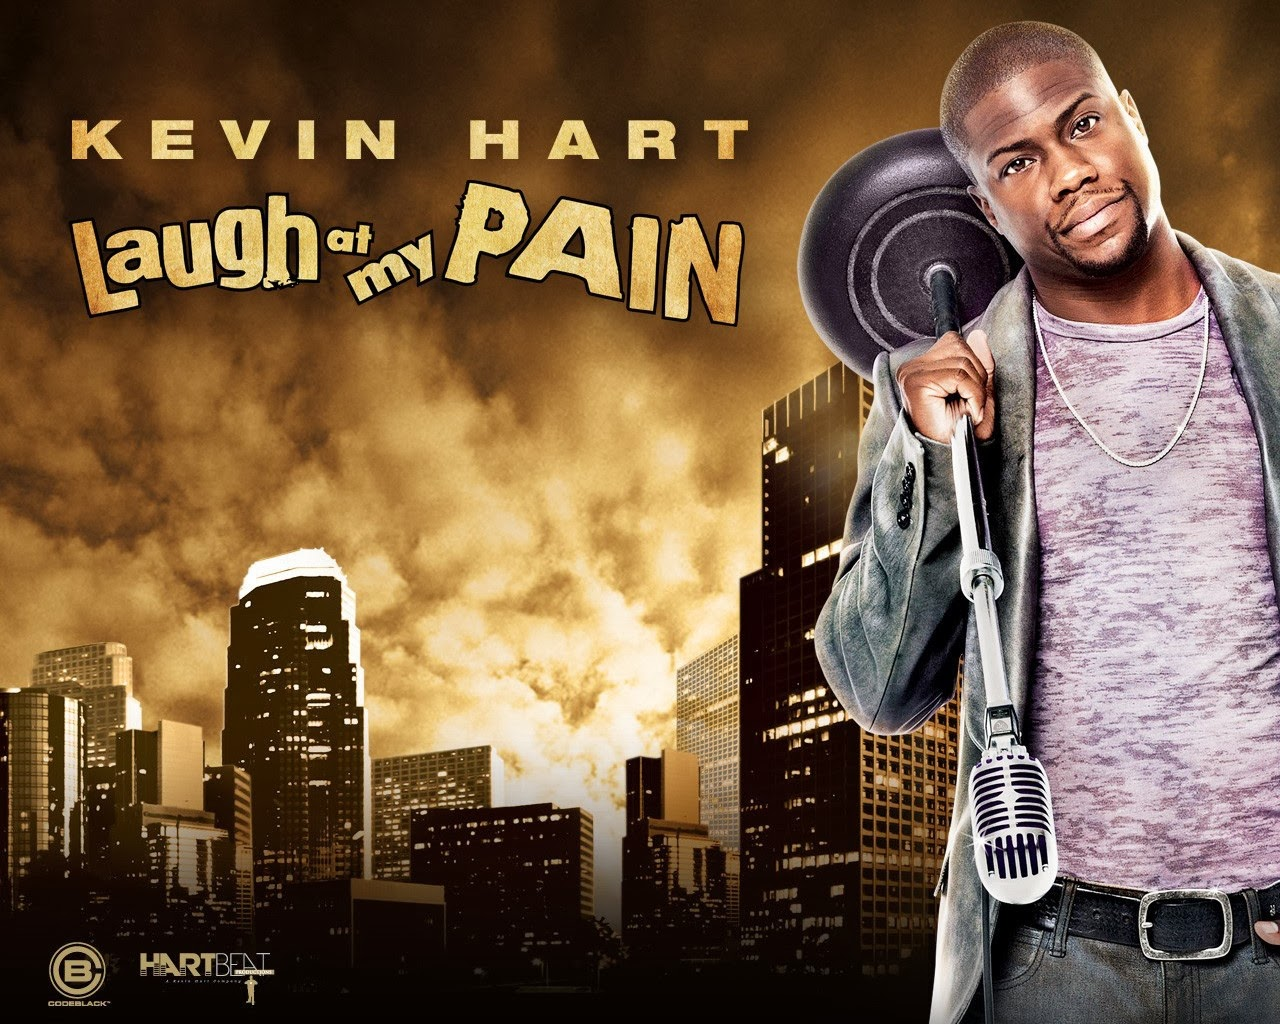 BIOGRAPHY: Kevin Hart ~ Ven